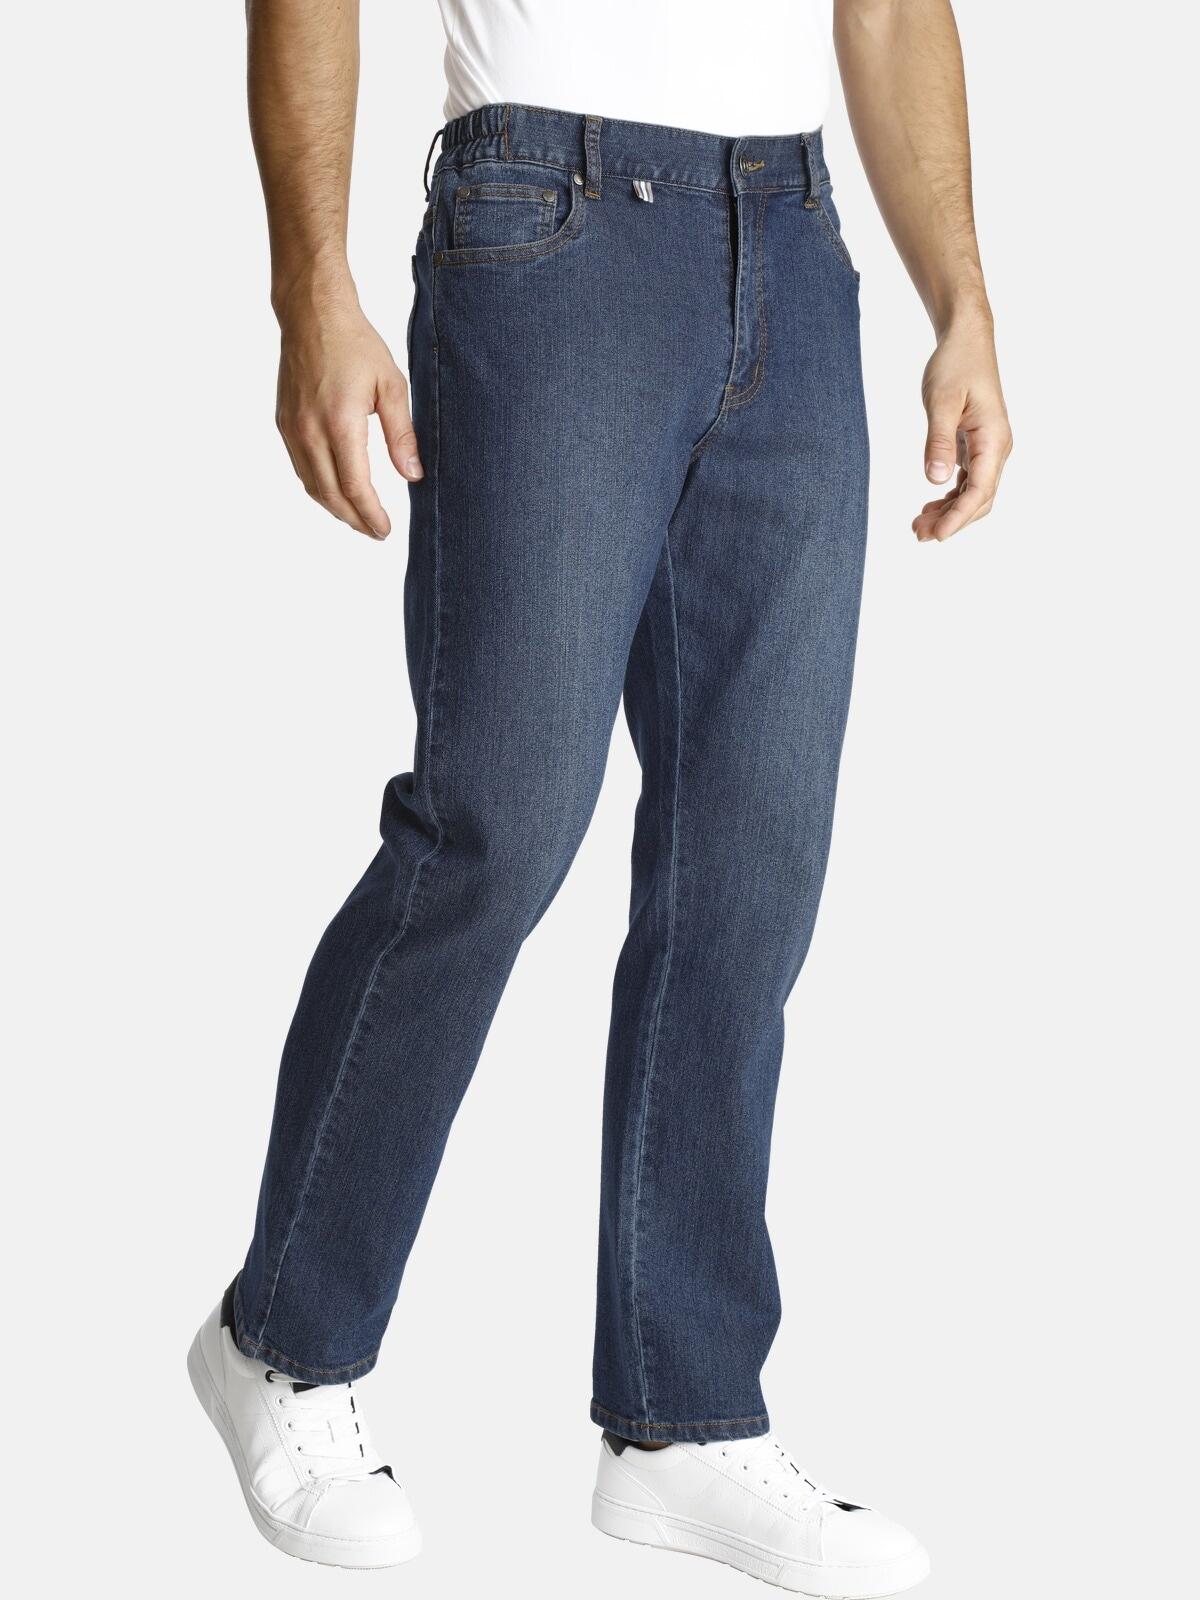 Jan Vanderstorm 5-Pocket-Jeans »HUTO« von Jan Vanderstorm